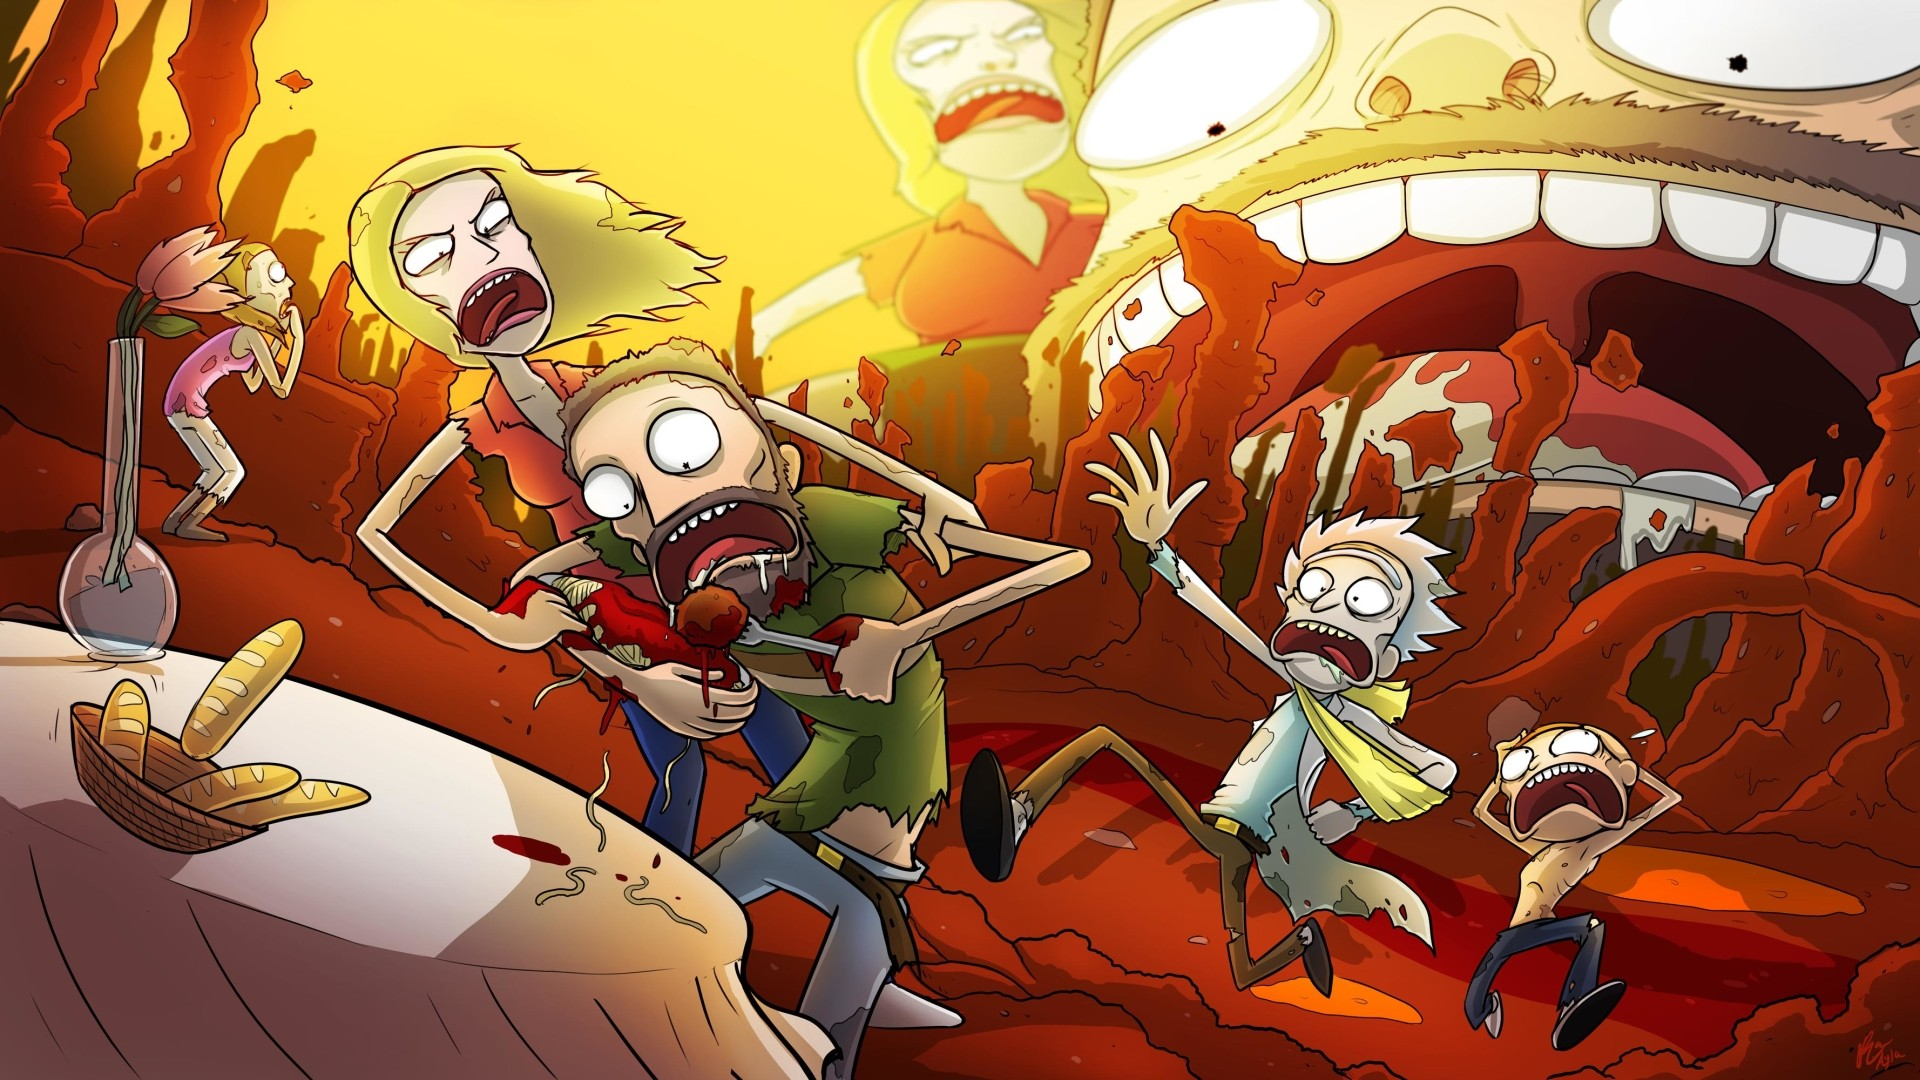 HD Rick Morty Backgrounds with image resolution 1920x1080 pixel. You can use this wallpaper as background for your desktop Computer Screensavers, Android or iPhone smartphones